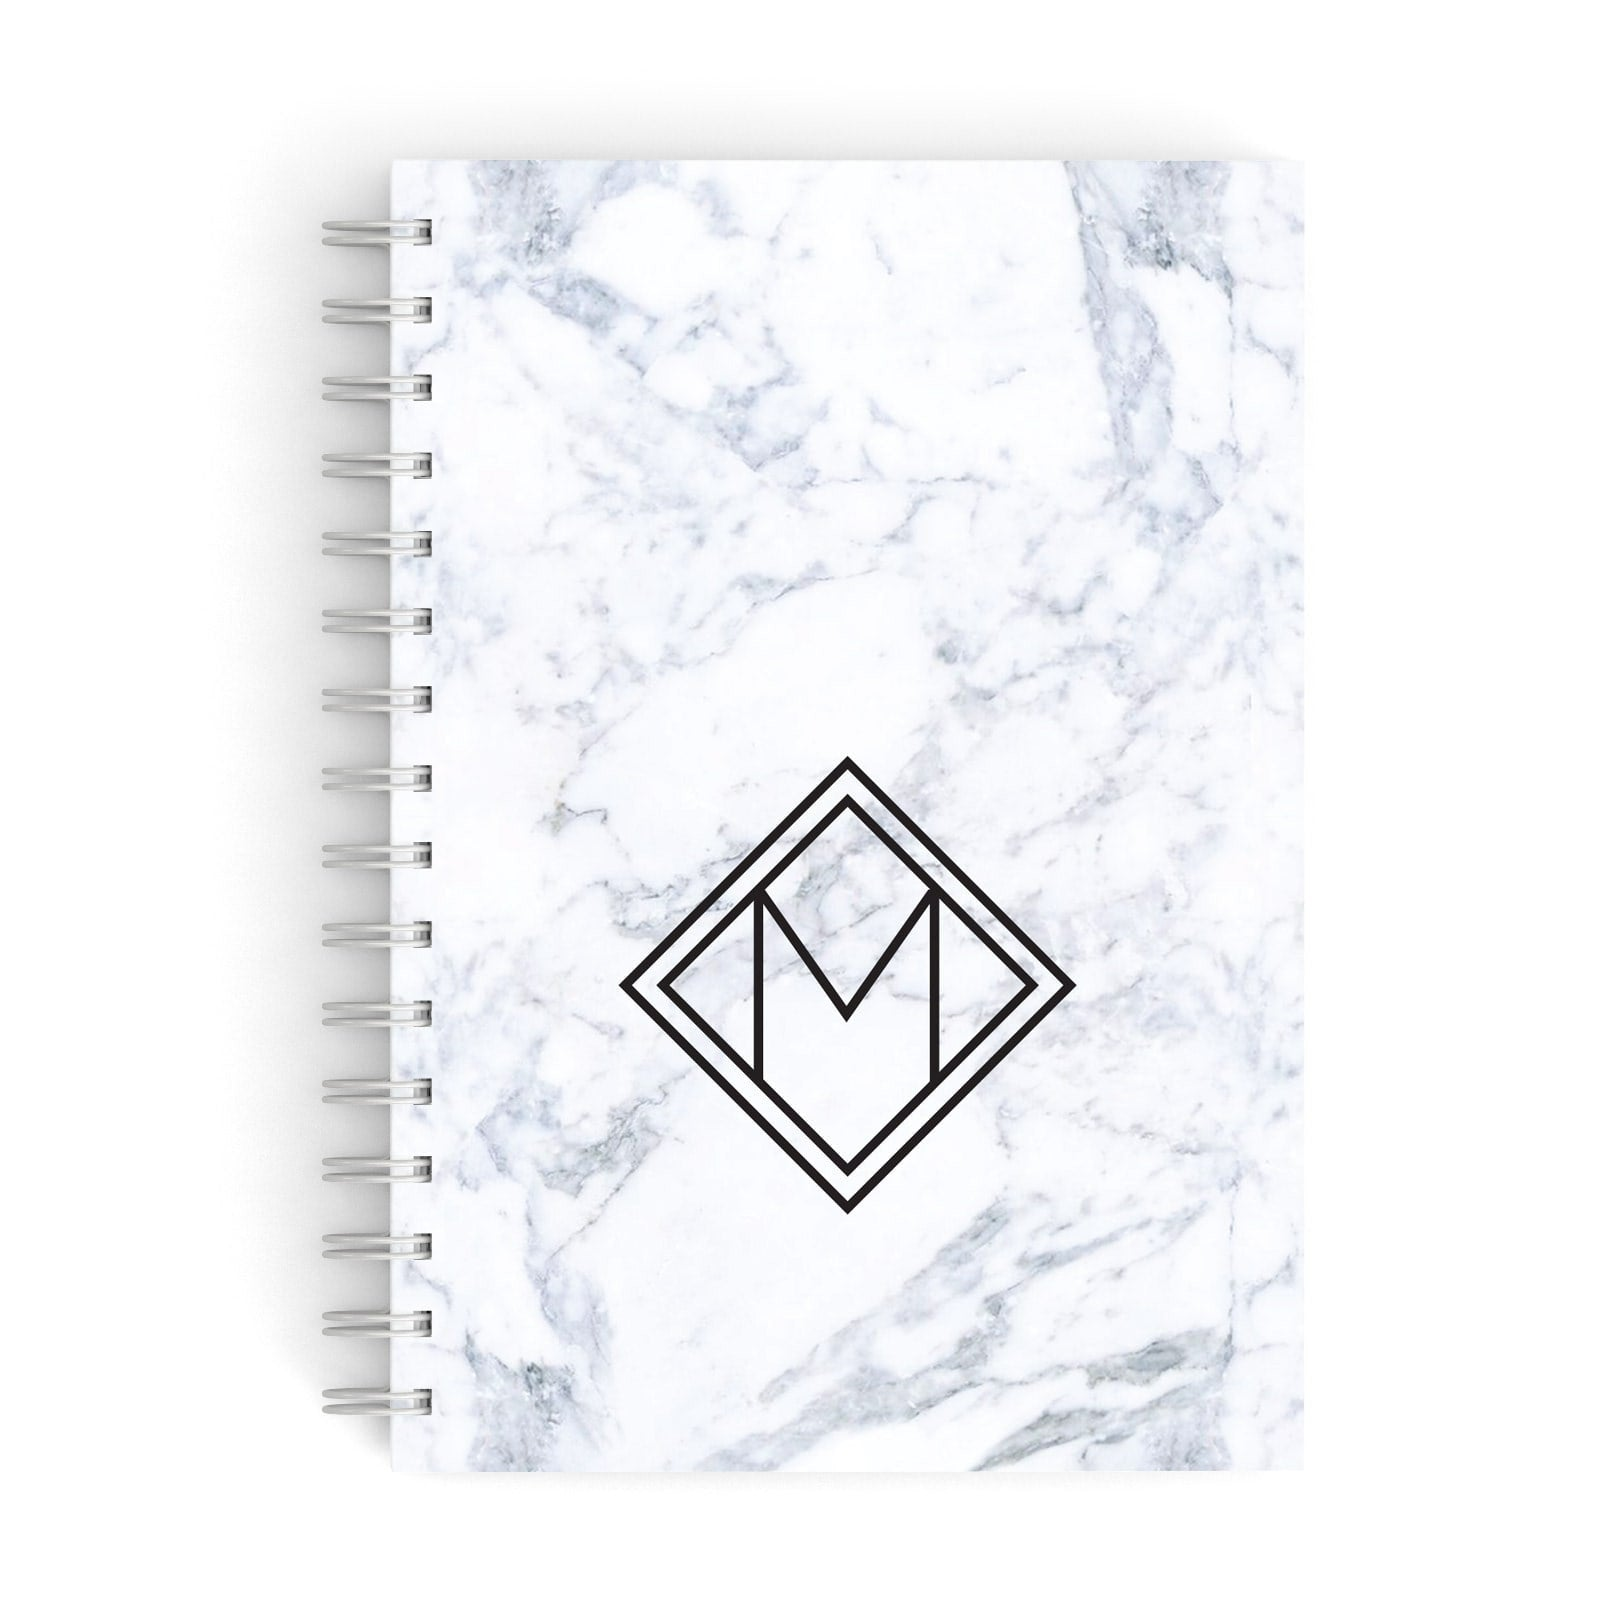 Personalised Marble Customised Initials A5 Hardcover Notebook